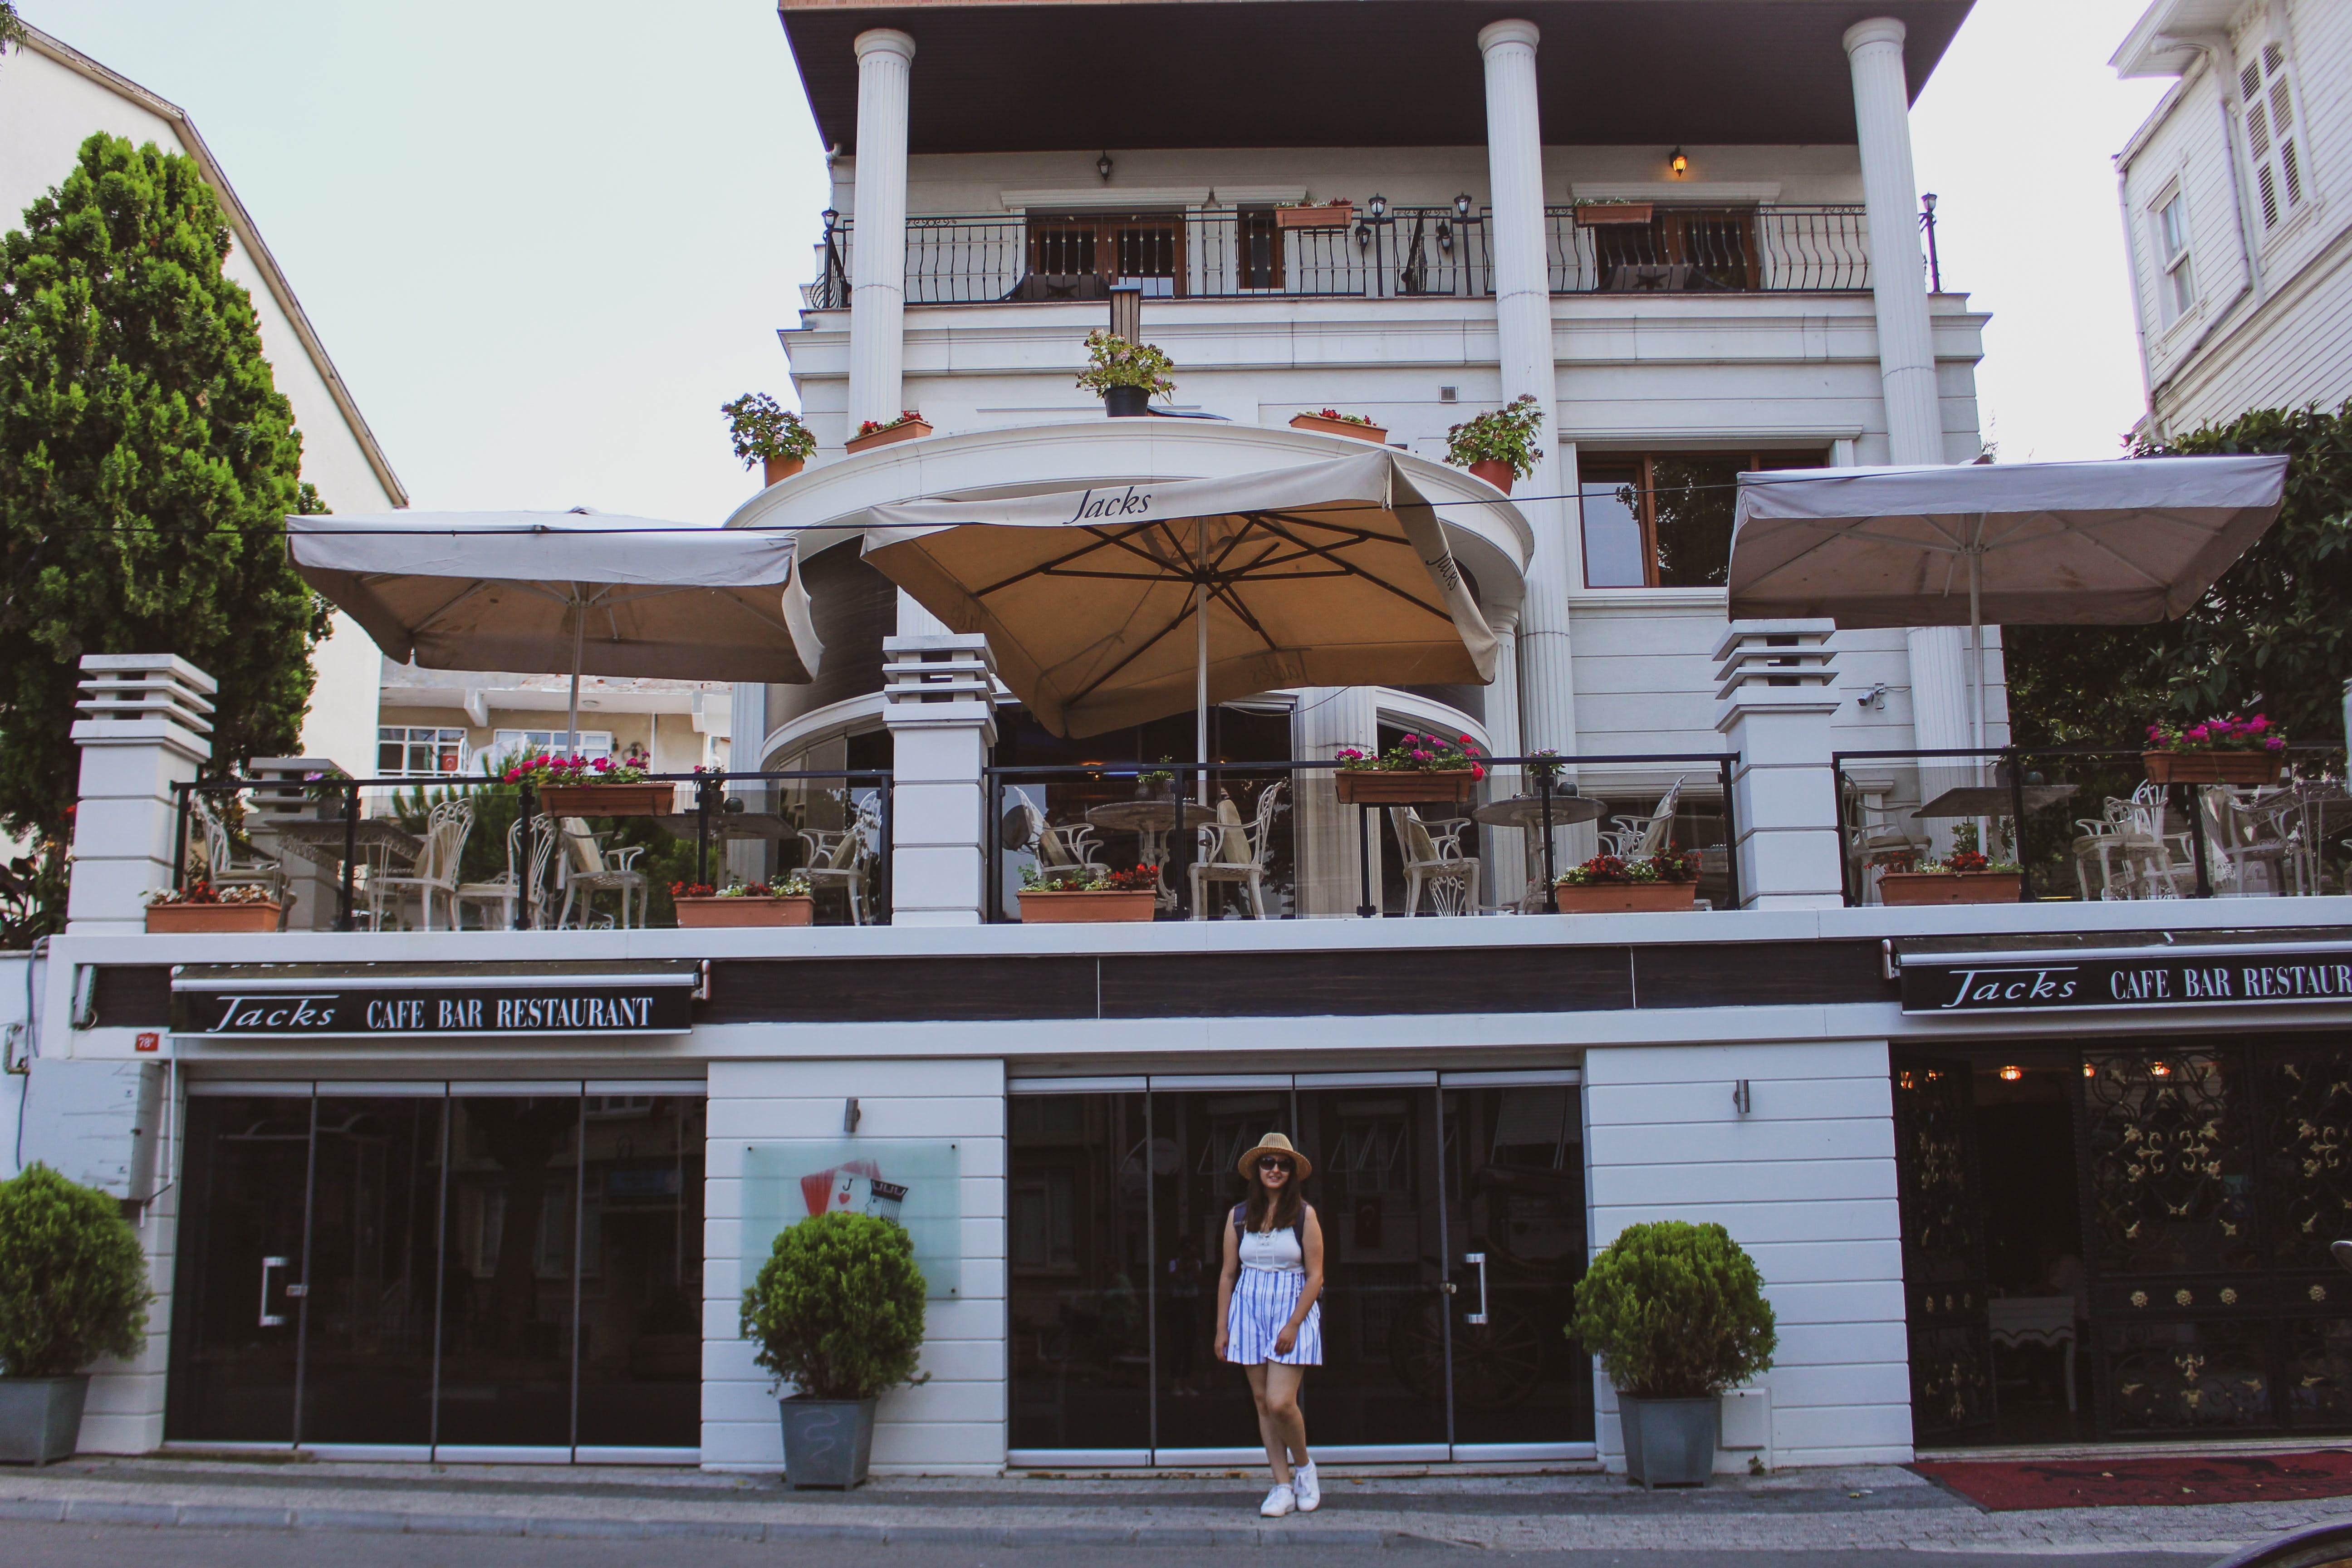 Woman Standing in Front of Restaurant